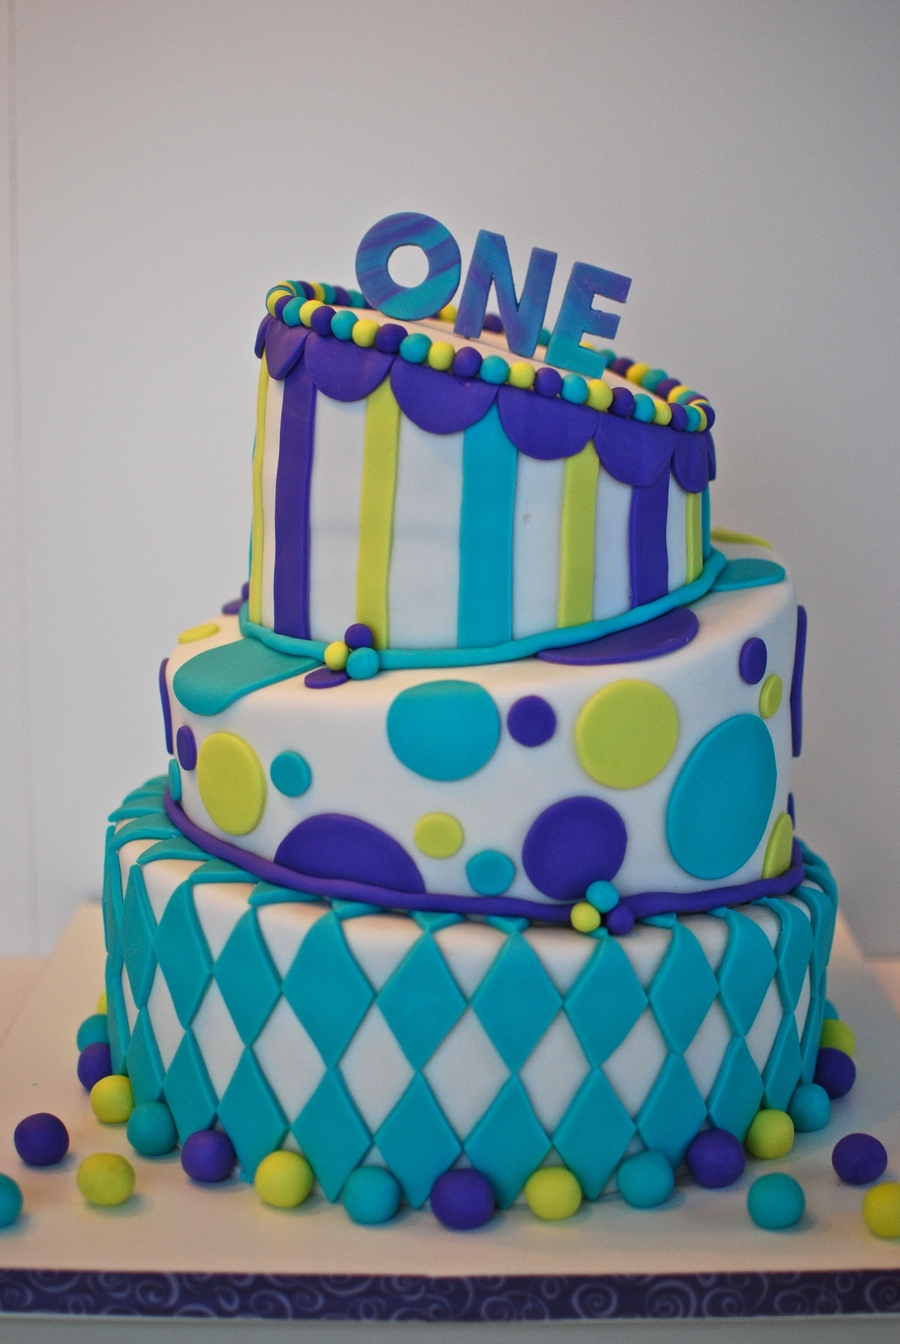 Topsy Tealy on Cake Central